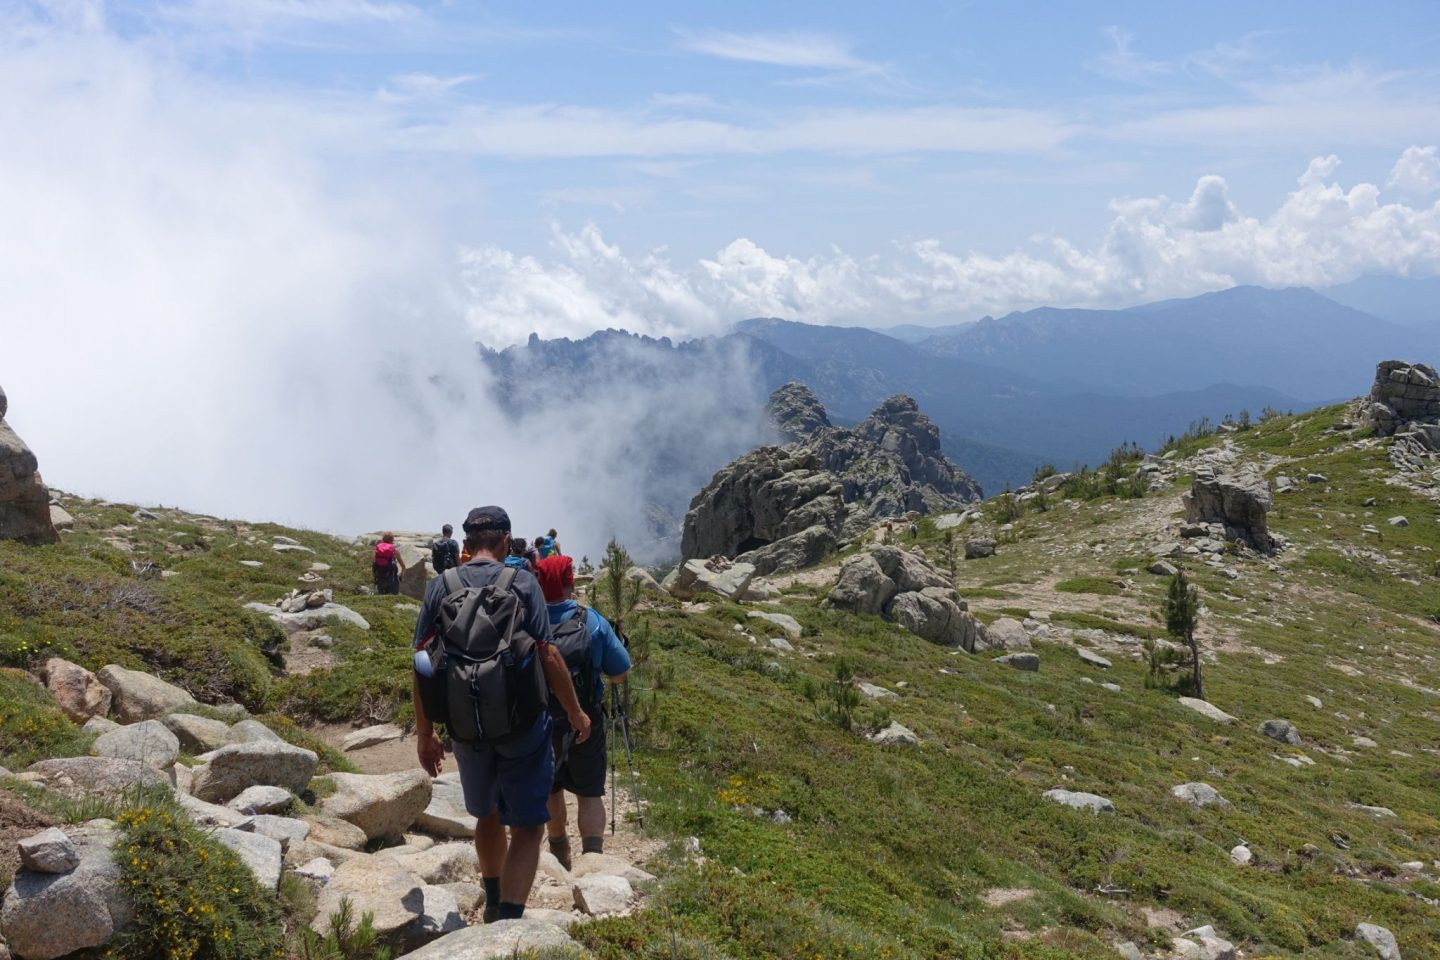 GR20, group walking down path with a cloud in front of them, grass to the side and rocky terrain ahead